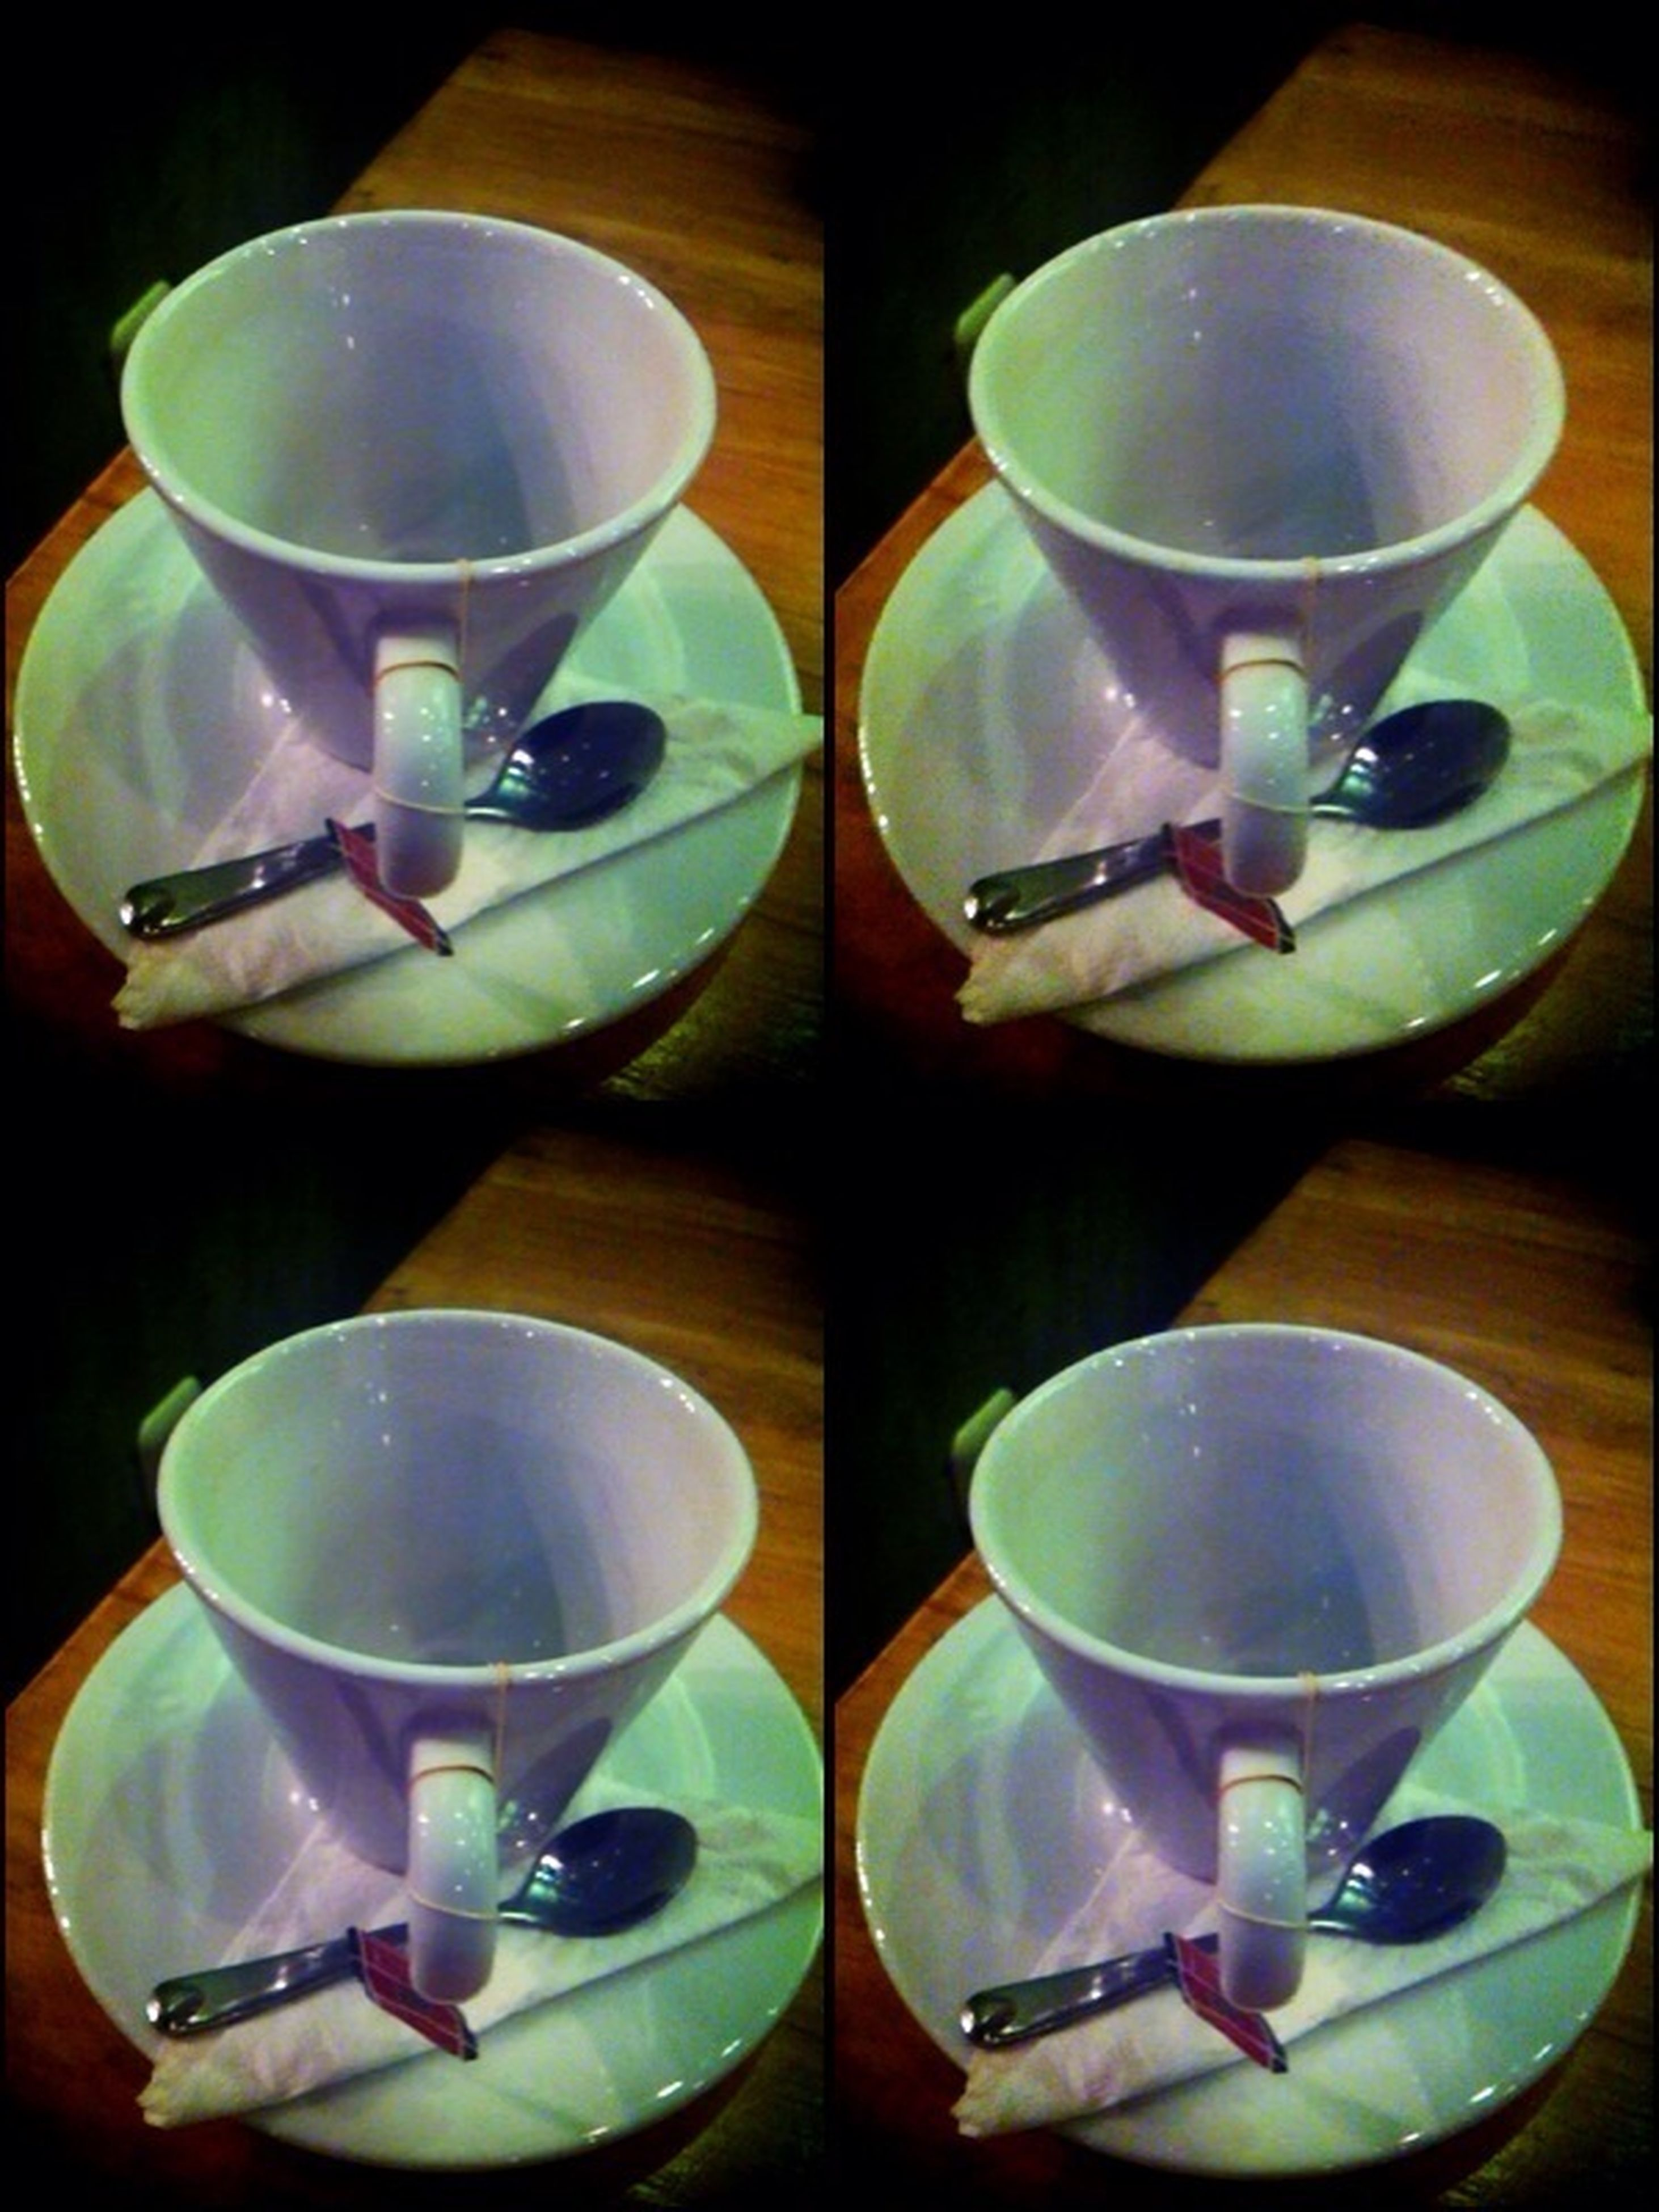 indoors, table, coffee cup, drink, food and drink, saucer, cup, still life, plate, coffee - drink, refreshment, tea cup, spoon, coffee, high angle view, arrangement, variation, fork, empty, freshness